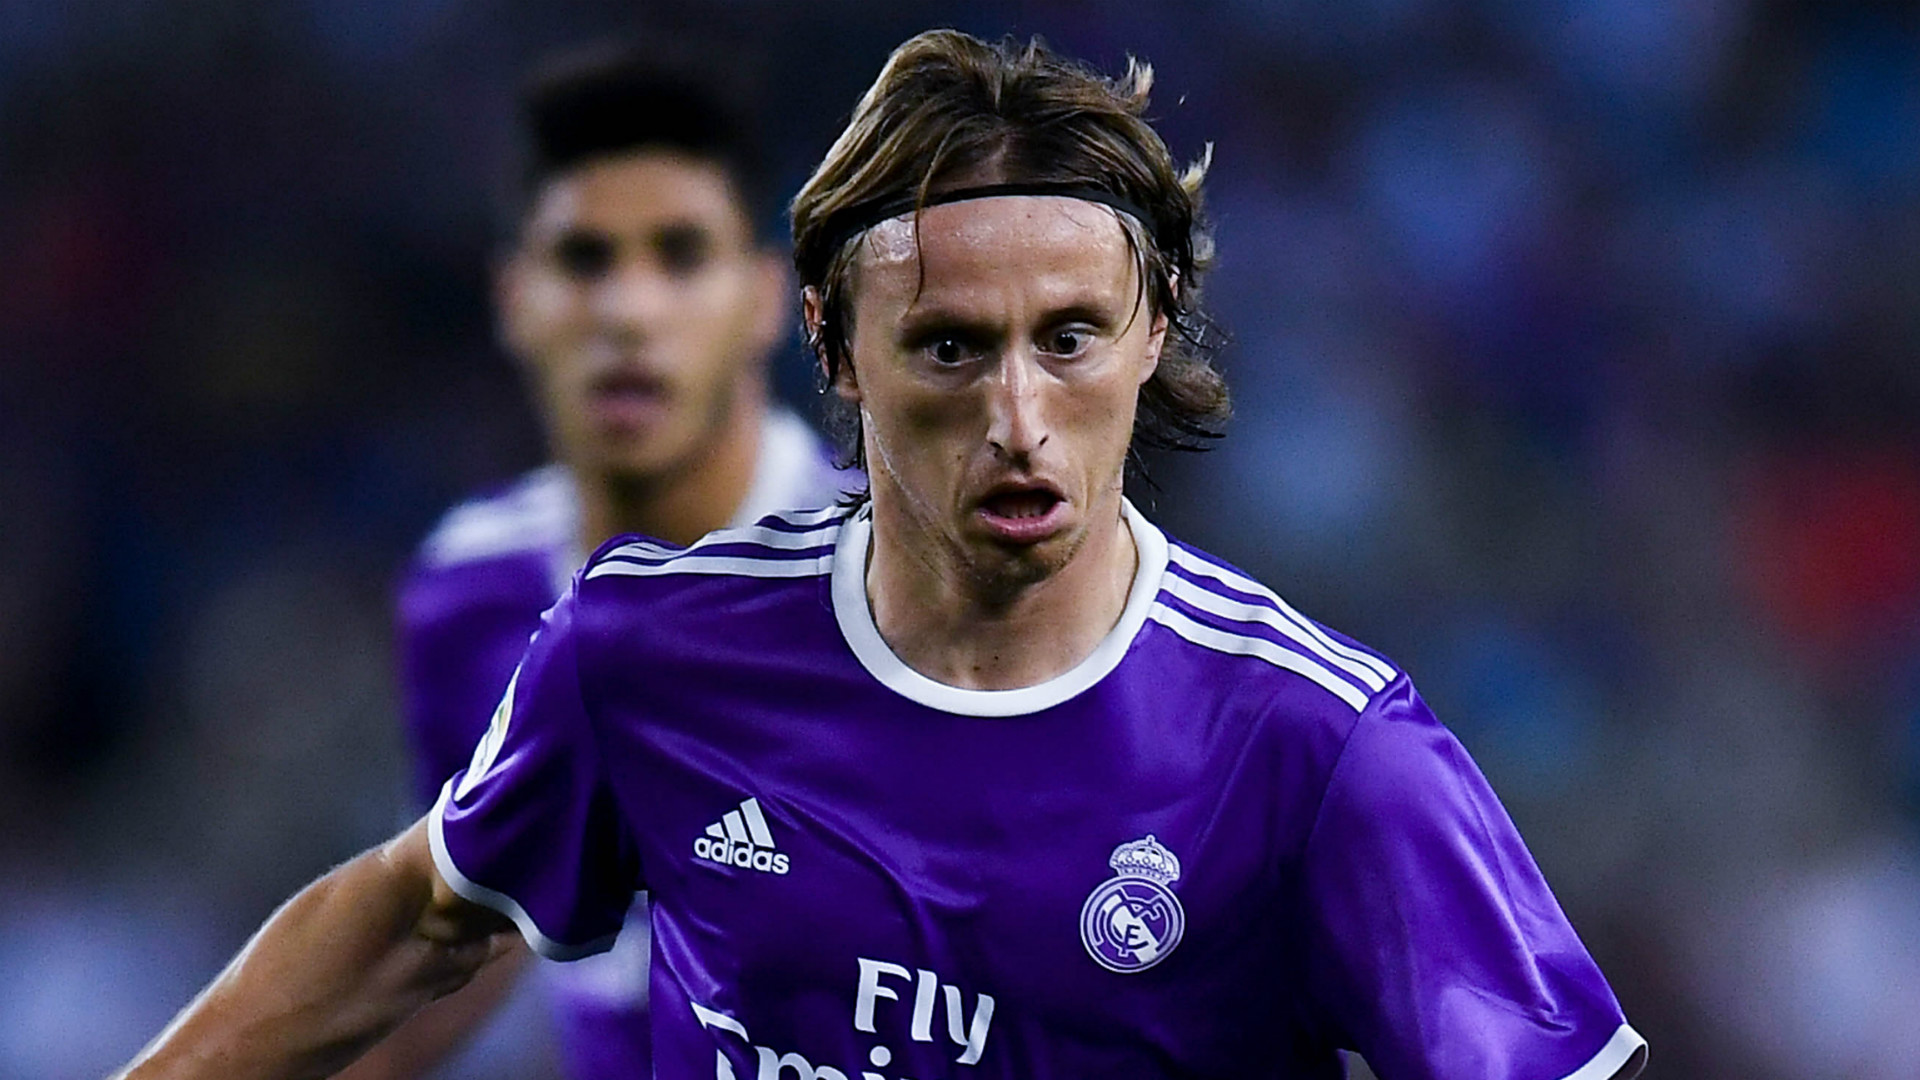 UEFA Team of the Year Luka Modric